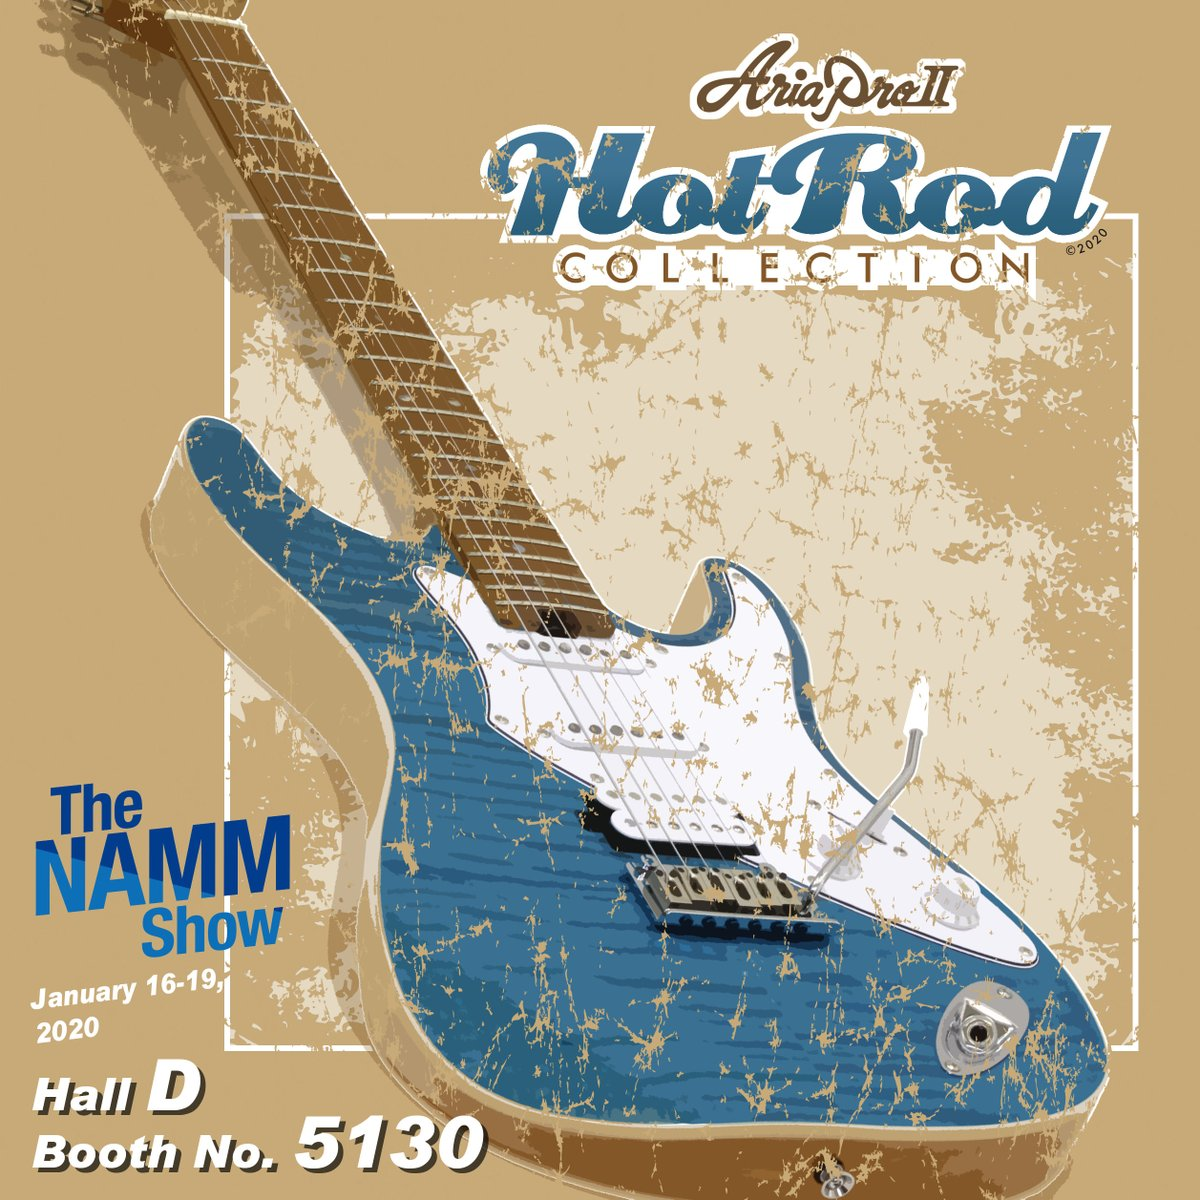 Aria Guitars On Twitter Come To See Us At Namm 2020 Hot Rod Collection Will Be Fully Unveiled At The Booth